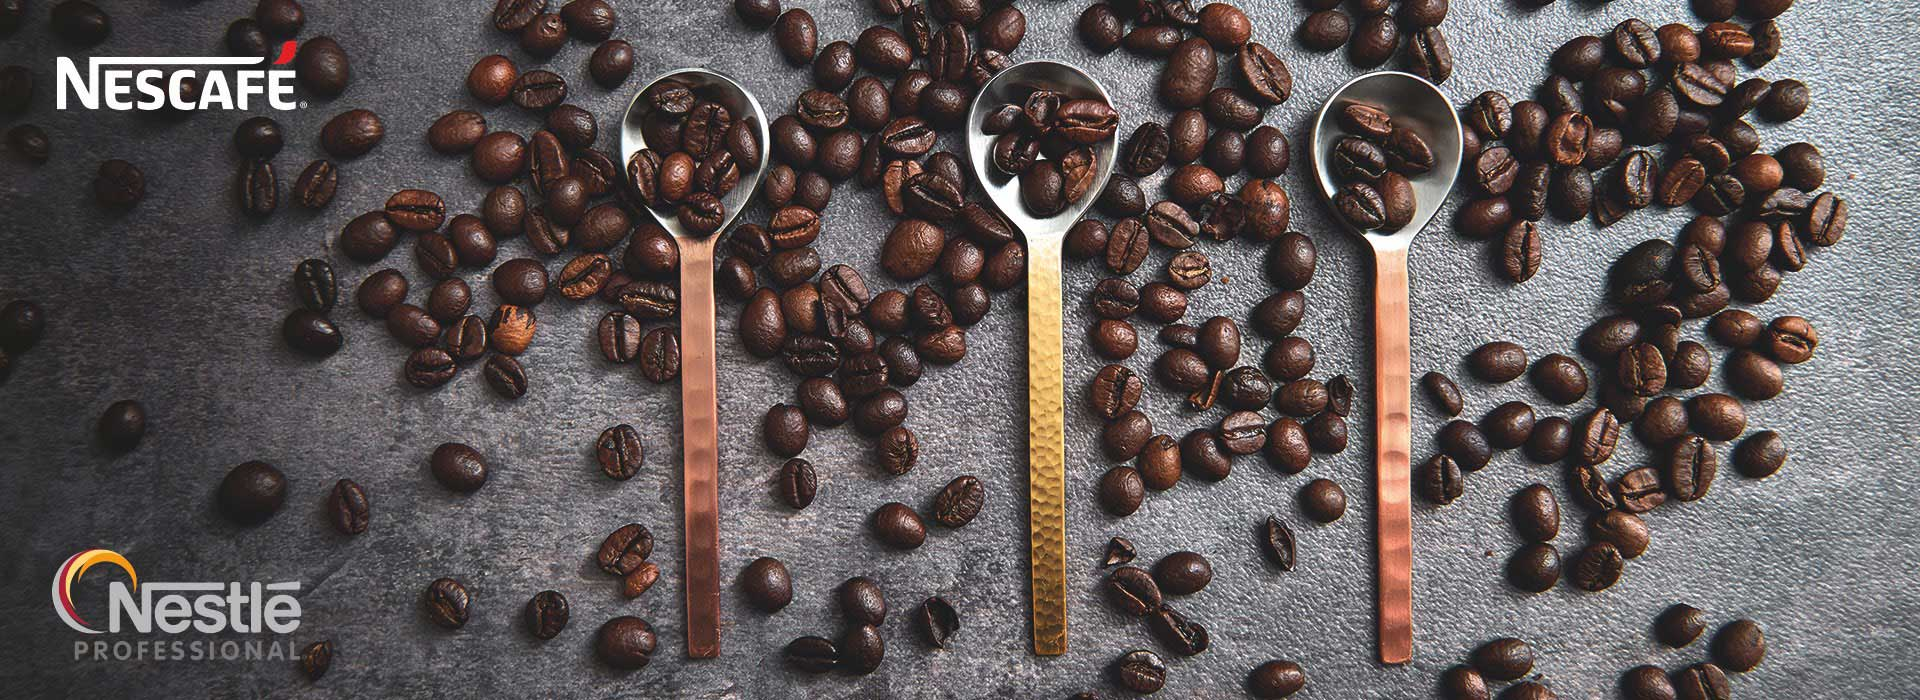 teaspoons with Nescafé launches ground coffee